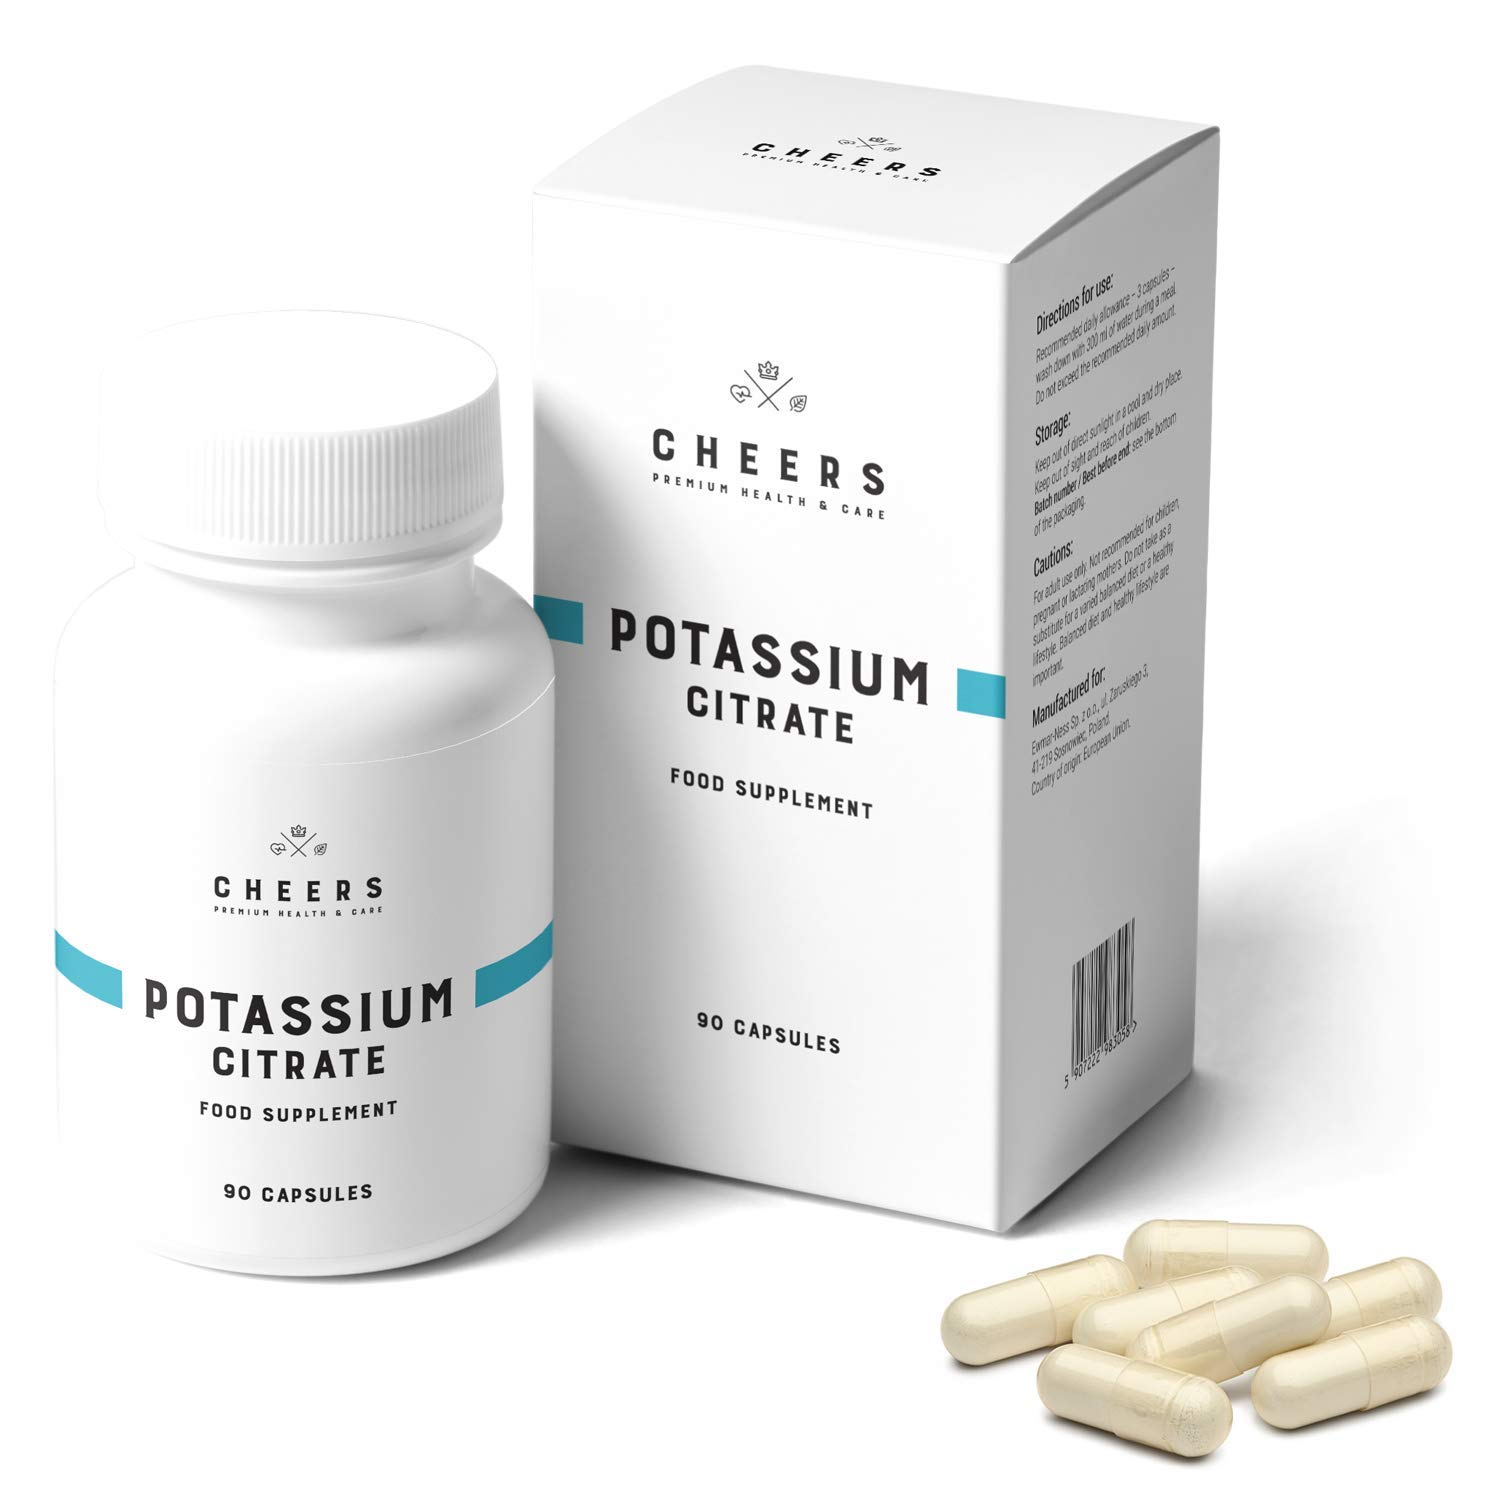 Cheers Natural Potassium Citrate Capsules 333mg | 90 Vegan Potassium Tablets | 1000mg Daily Dosage = 50% DV | Keto Potassium Supplement Premium Quality for Adults | Natural Mineral Electrolyte